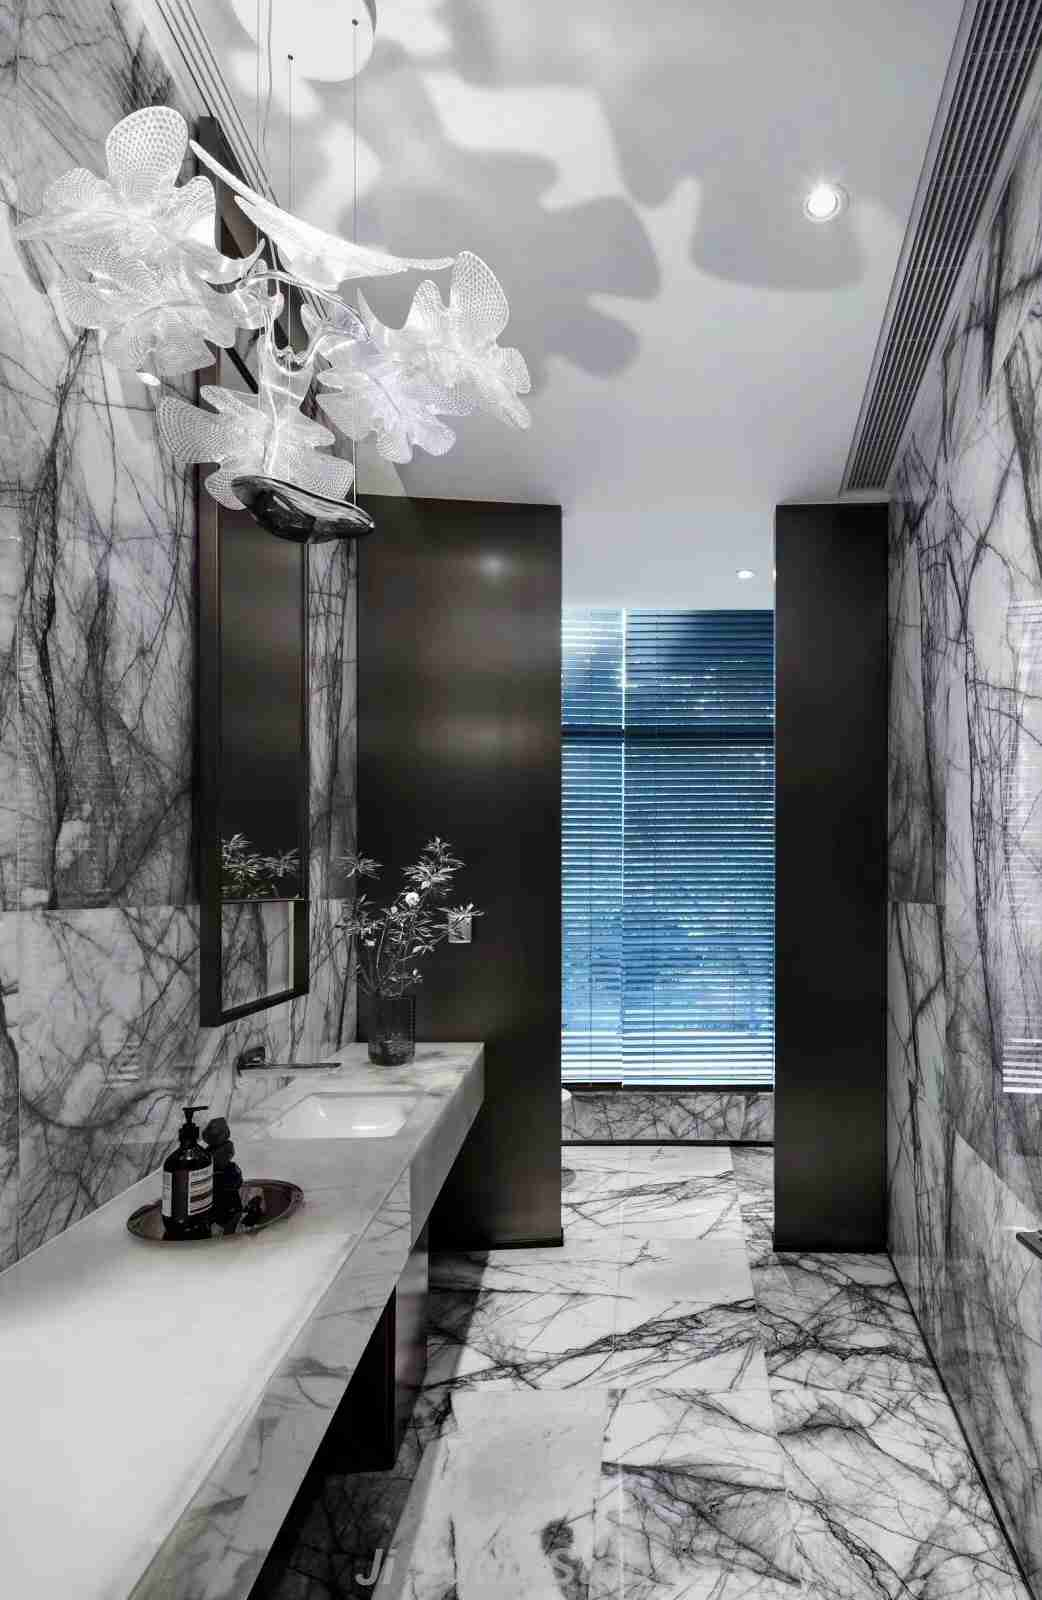 Lilac Marble Lilac Marble Marble Supplier Turkish Lilac Marble Turkish Marble Marble Bathroom Ideas Indian Marble Turkish Marble Tiles Classic Marble Lilac Marble Slab Marble